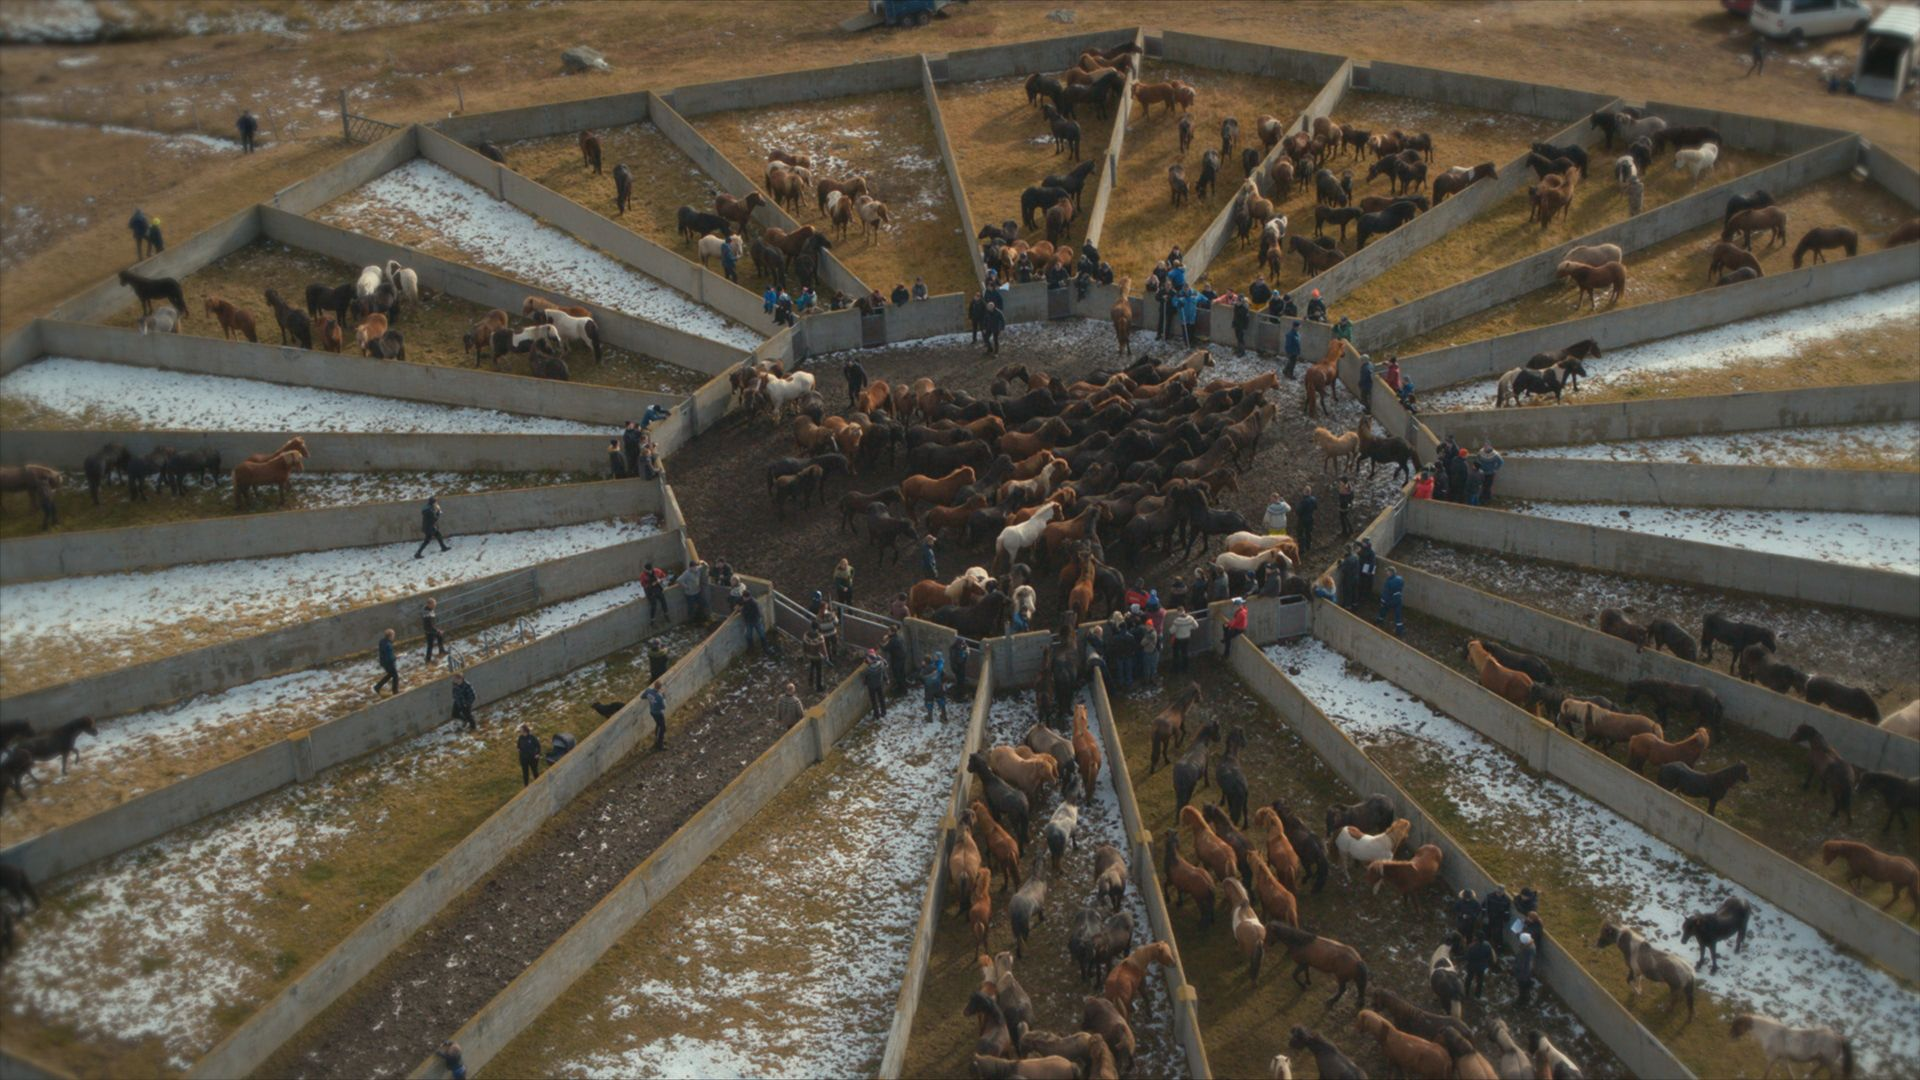 Horses in the corral. This is from Europe from above, season 4. [Photo of the day - September 2021]